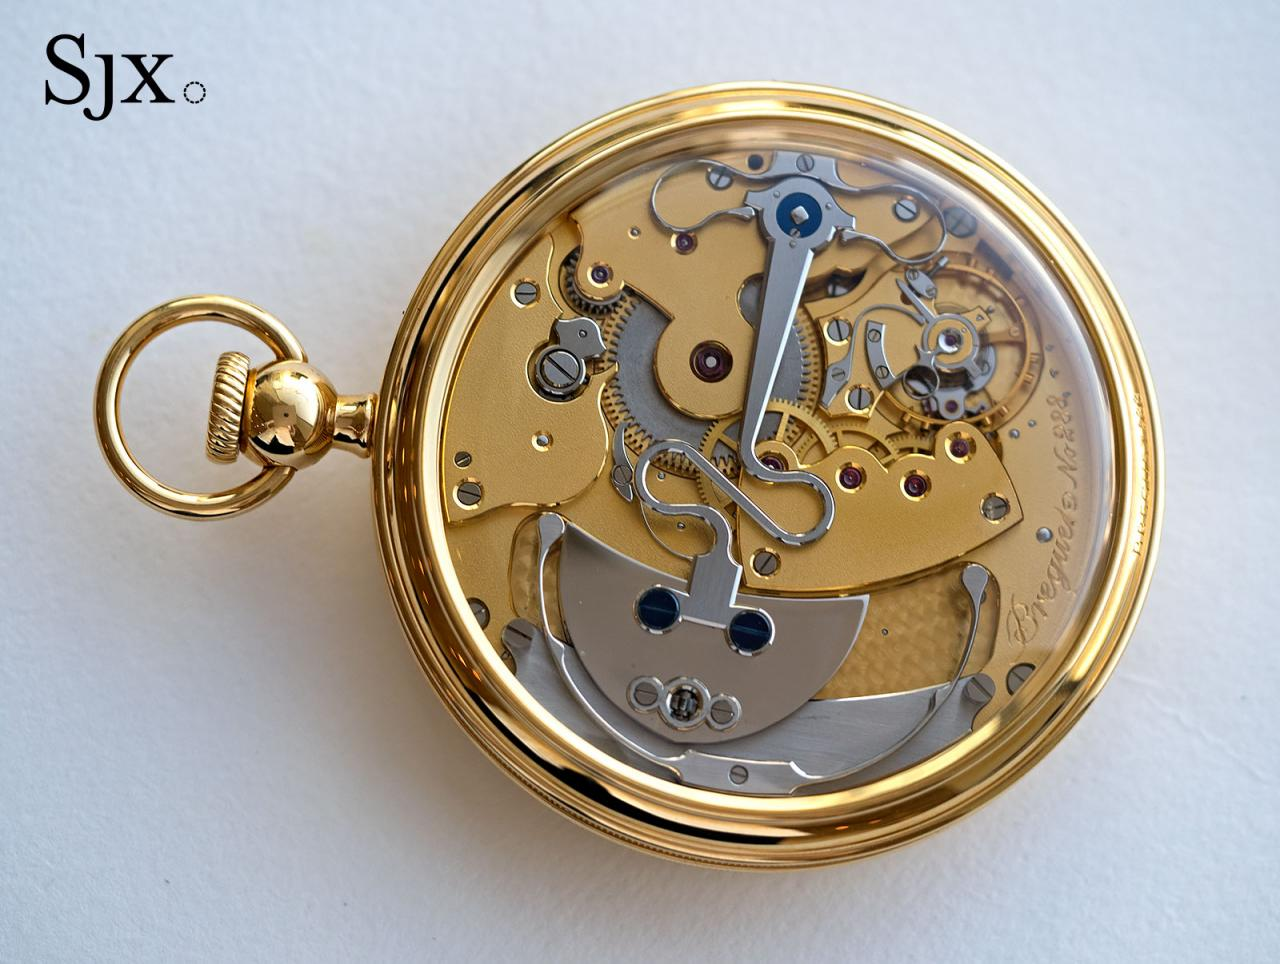 Breguet Souscription set pocket watch 1